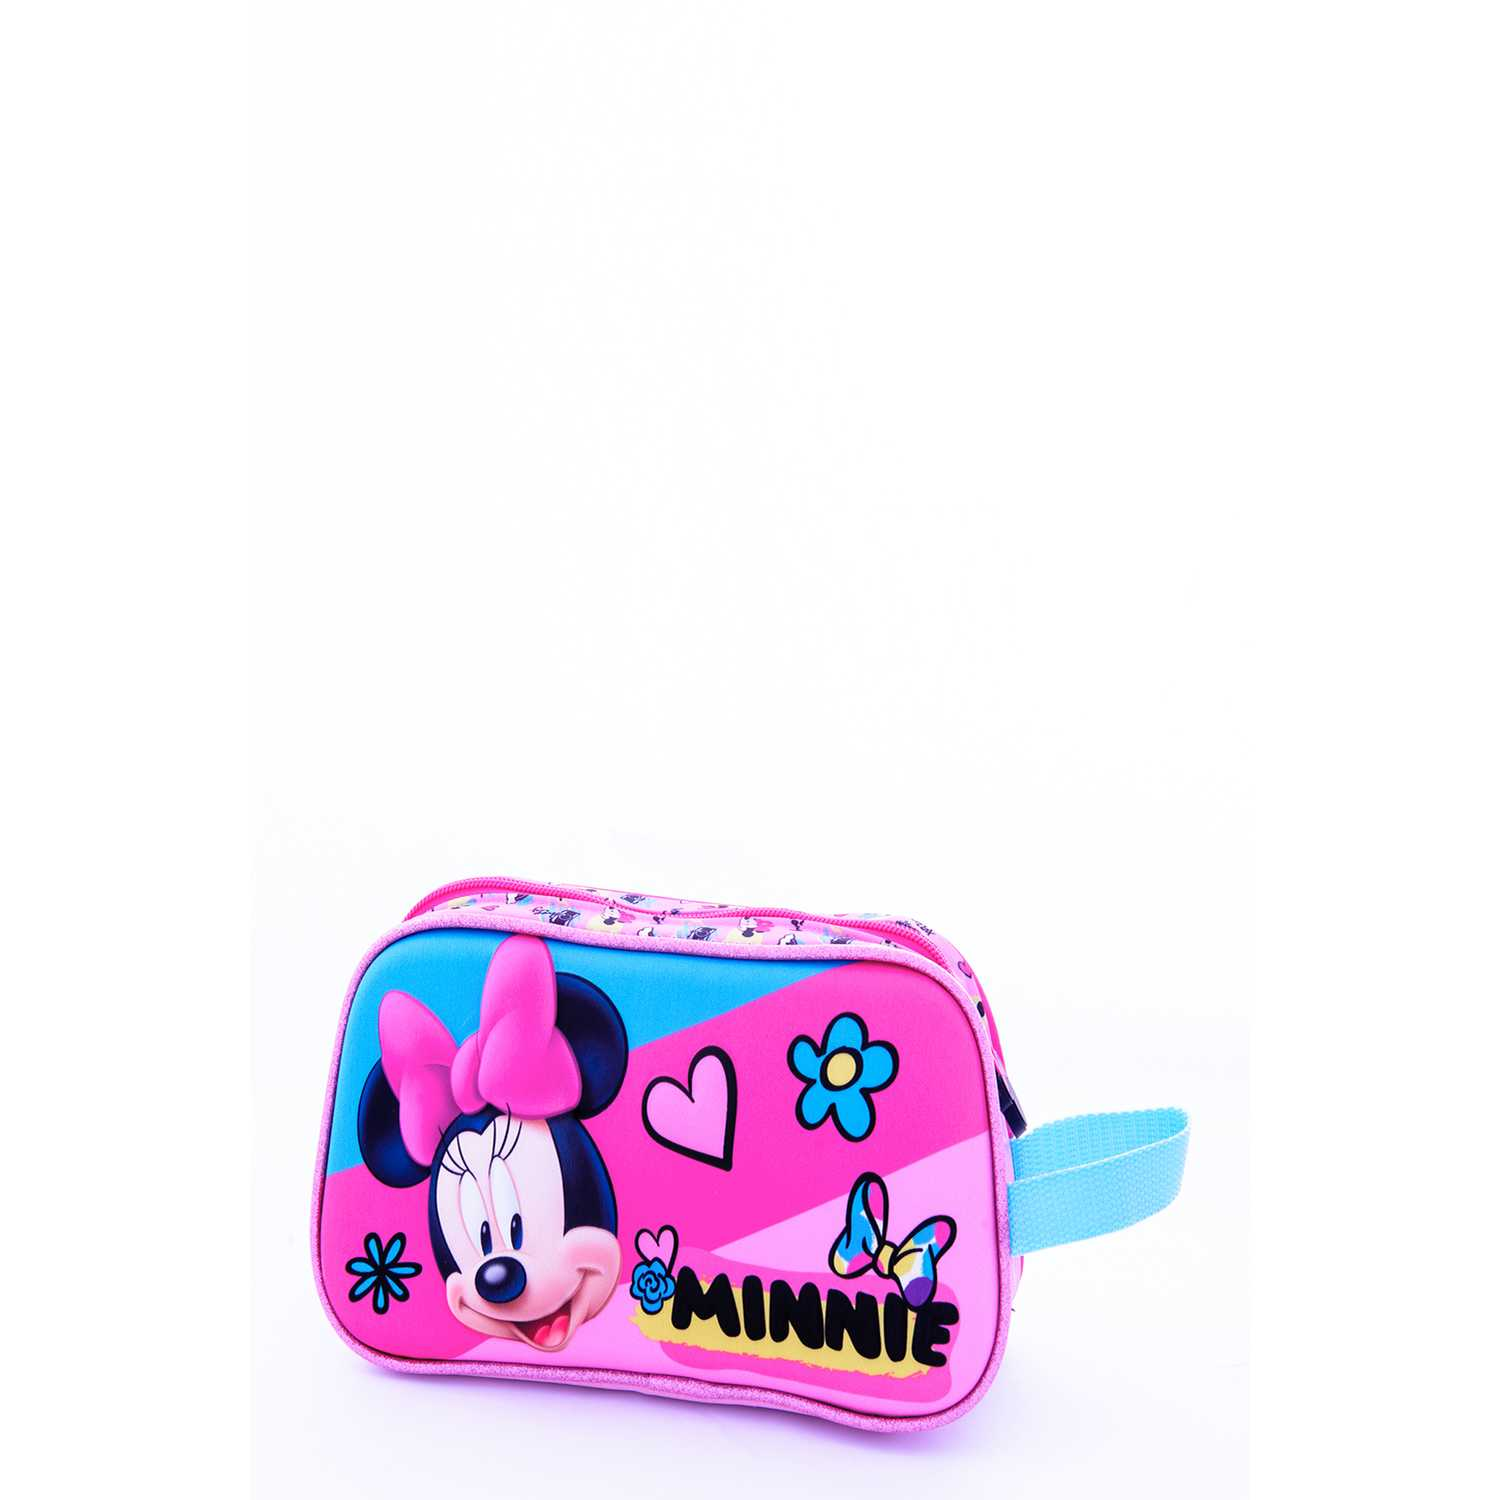 Cartuchera de Niña Scool Rosado 9 scool minnie cart fantasia division